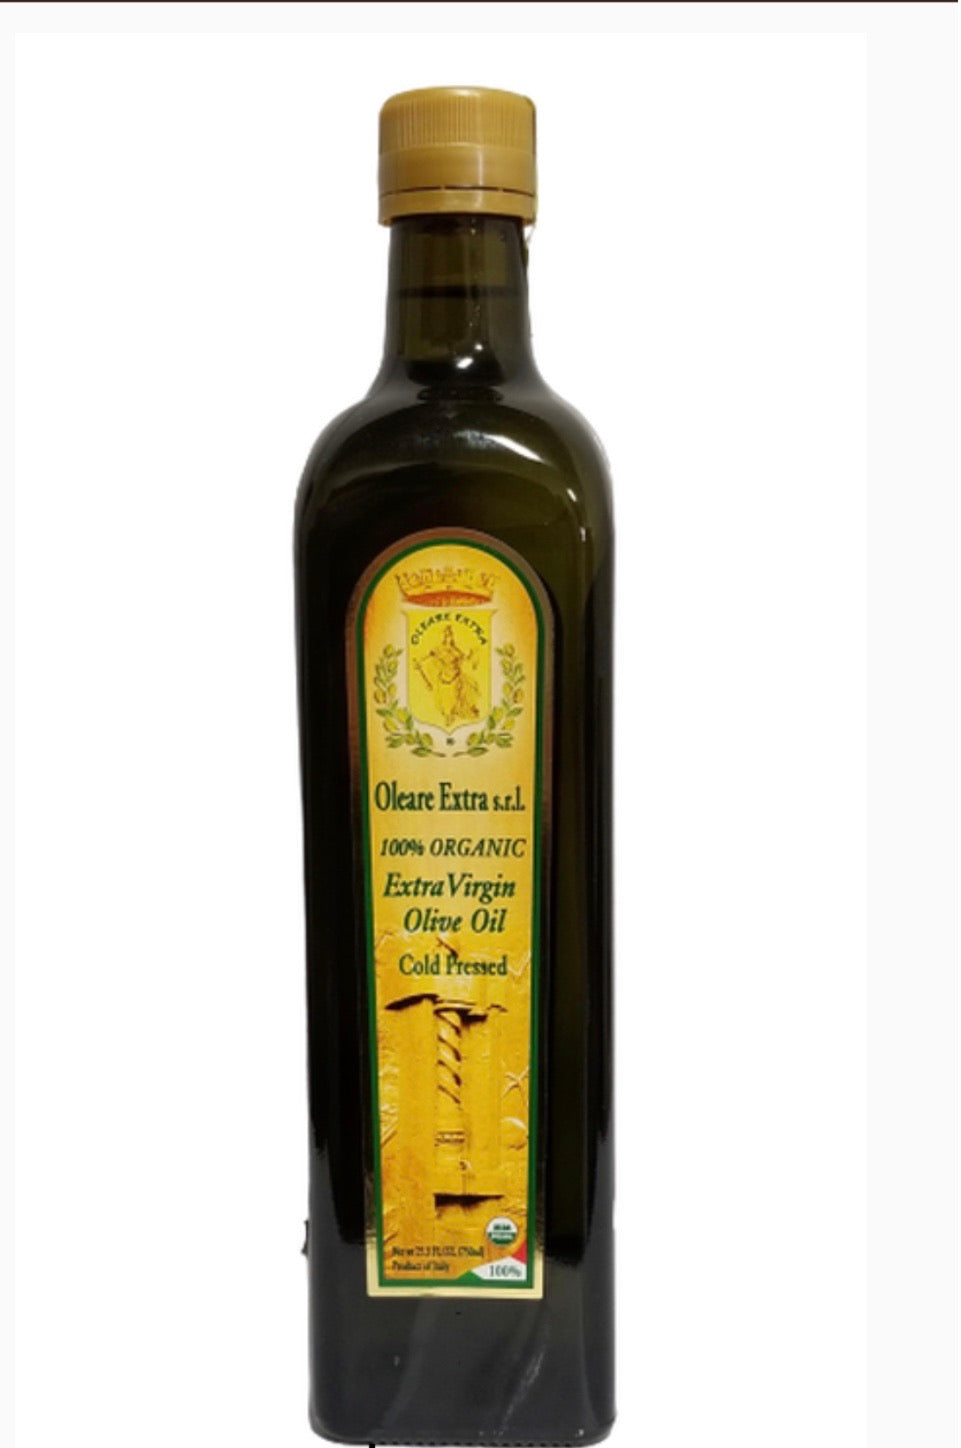 Oleara extra, 100% organic Extra virgin olive oil